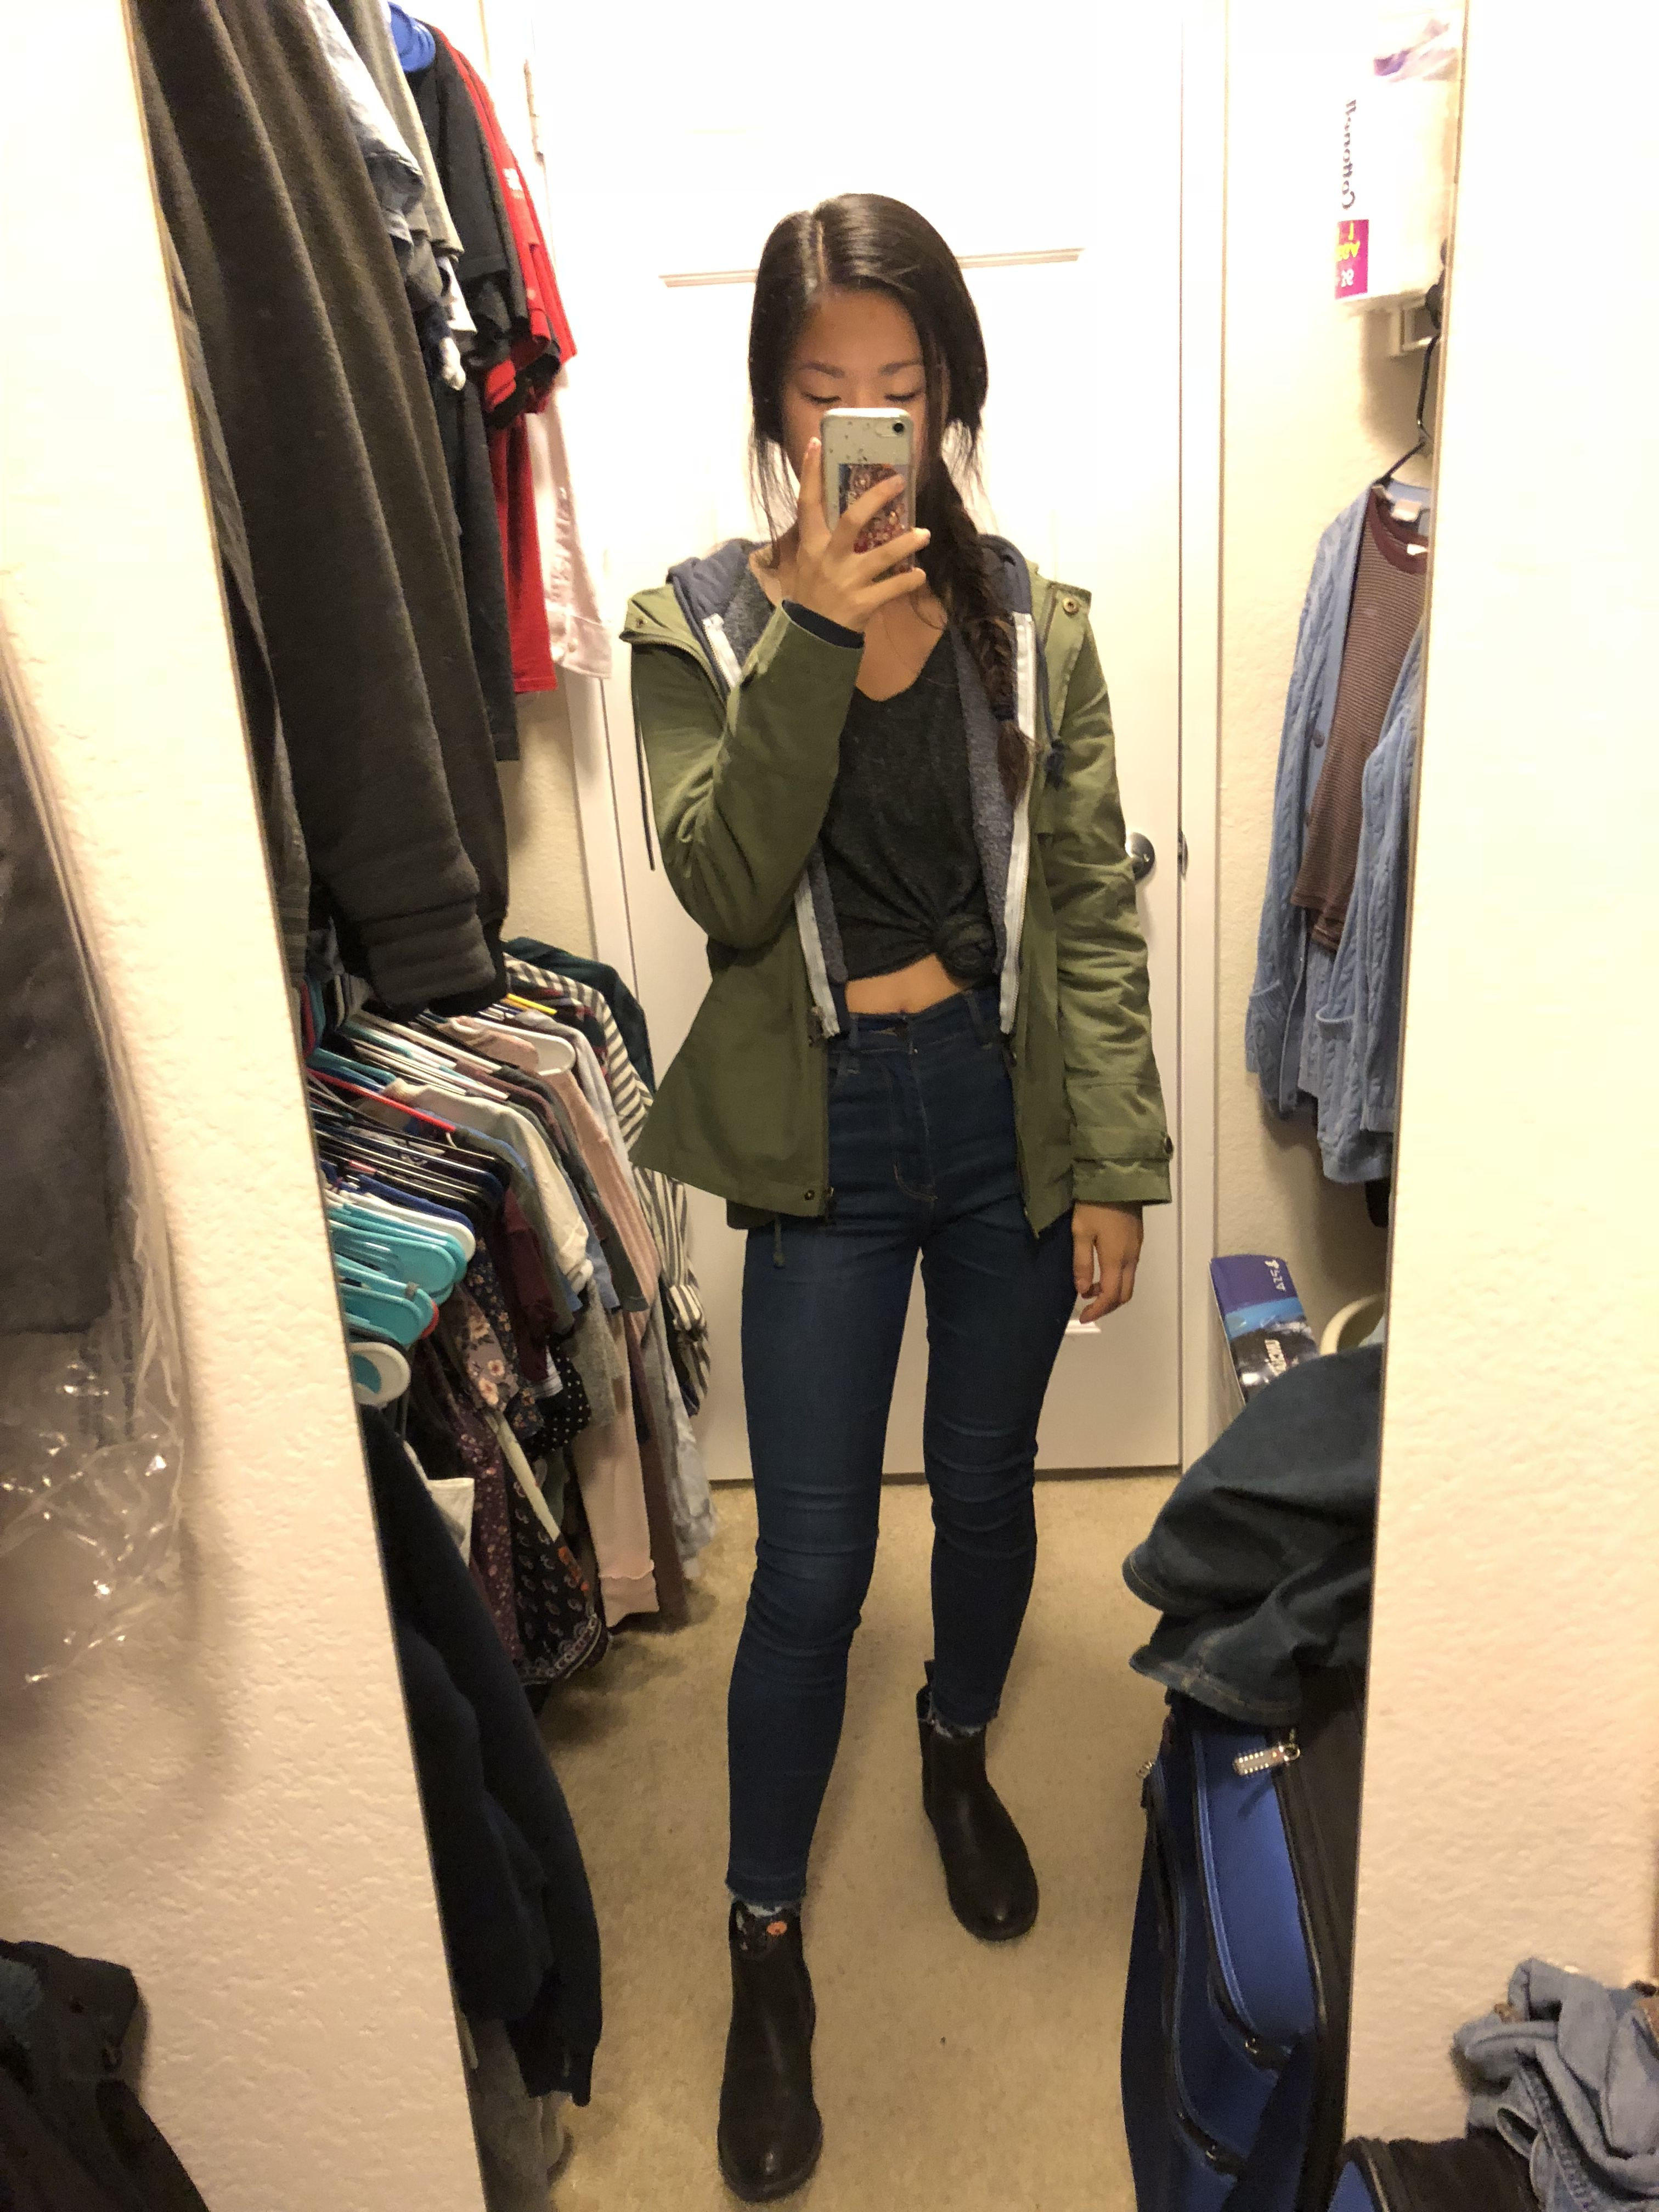 Layered outfit: high rise jeans, hoodie, olive utility jacket